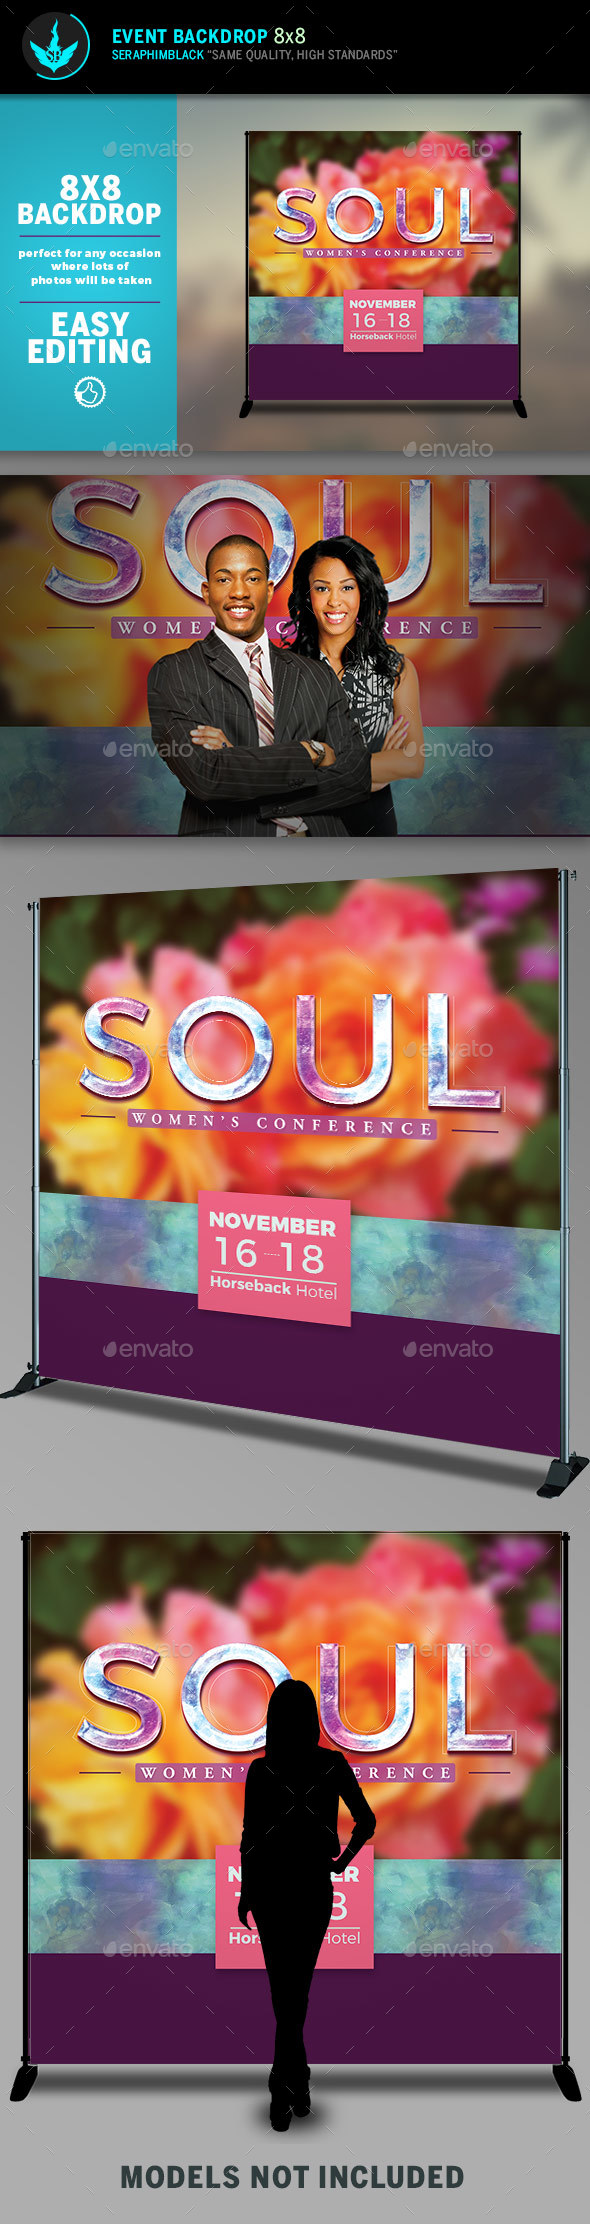 GraphicRiver Soul Floral 8x8 Event Backdrop Template 20490039